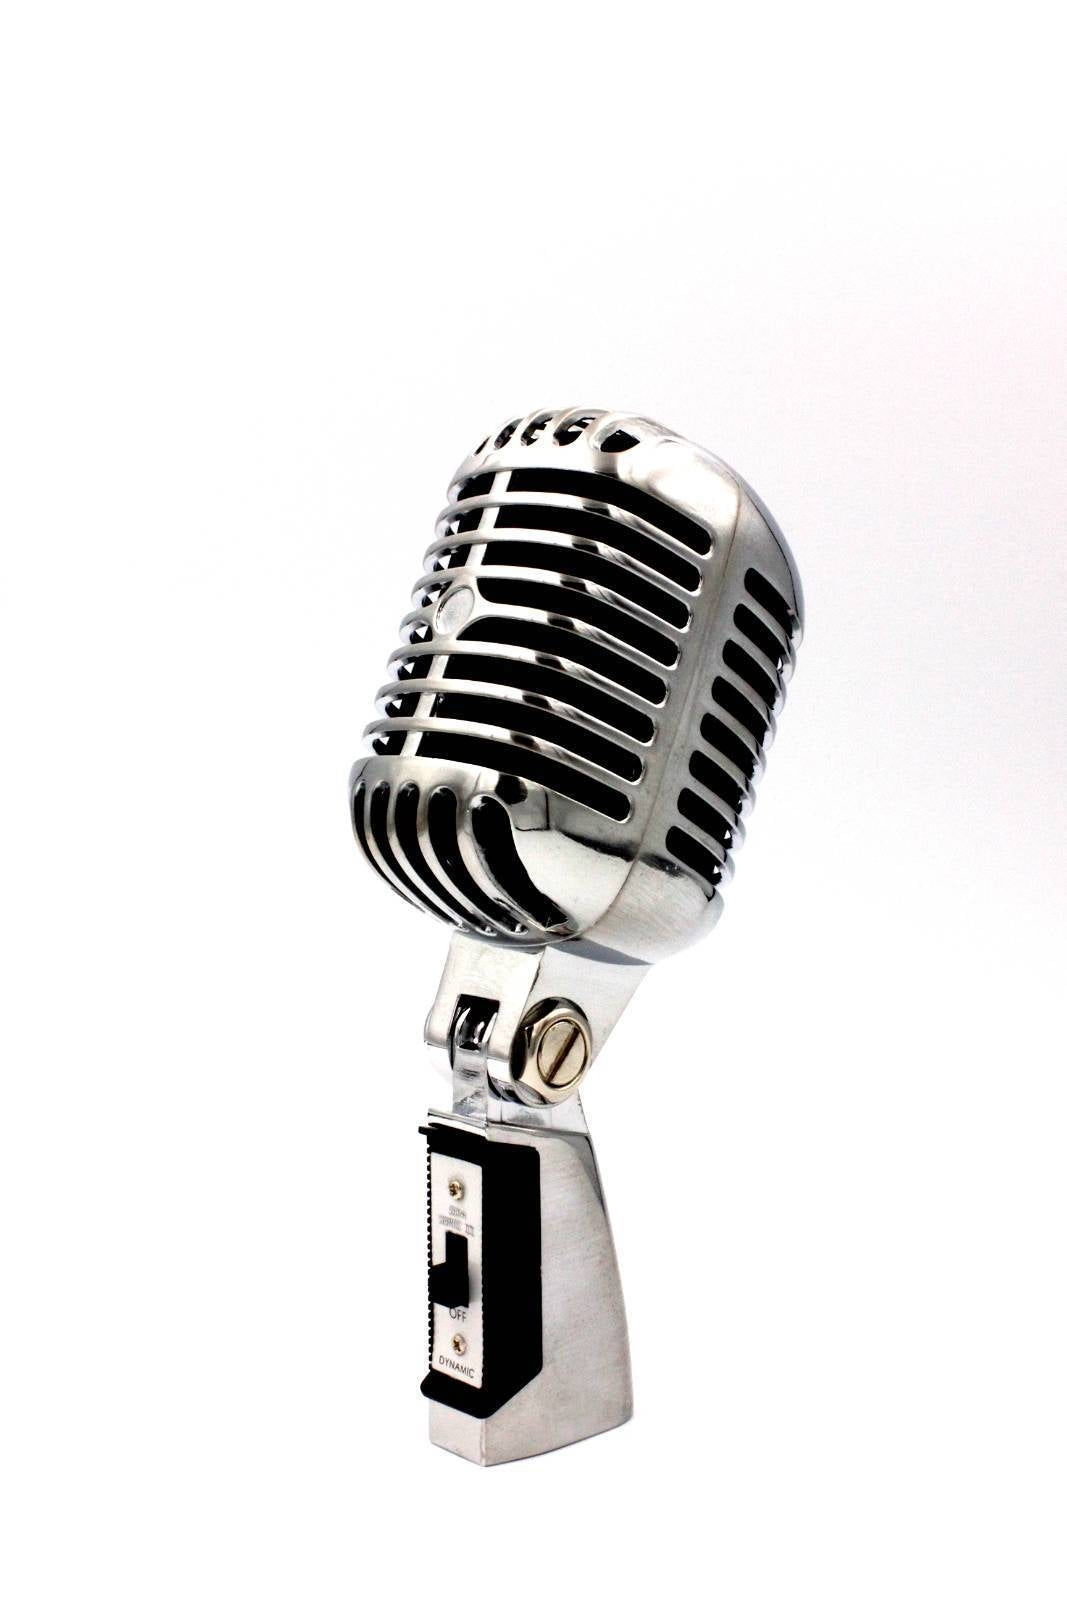 Classic Retro Vintage style Dynamic Vocal Microphone